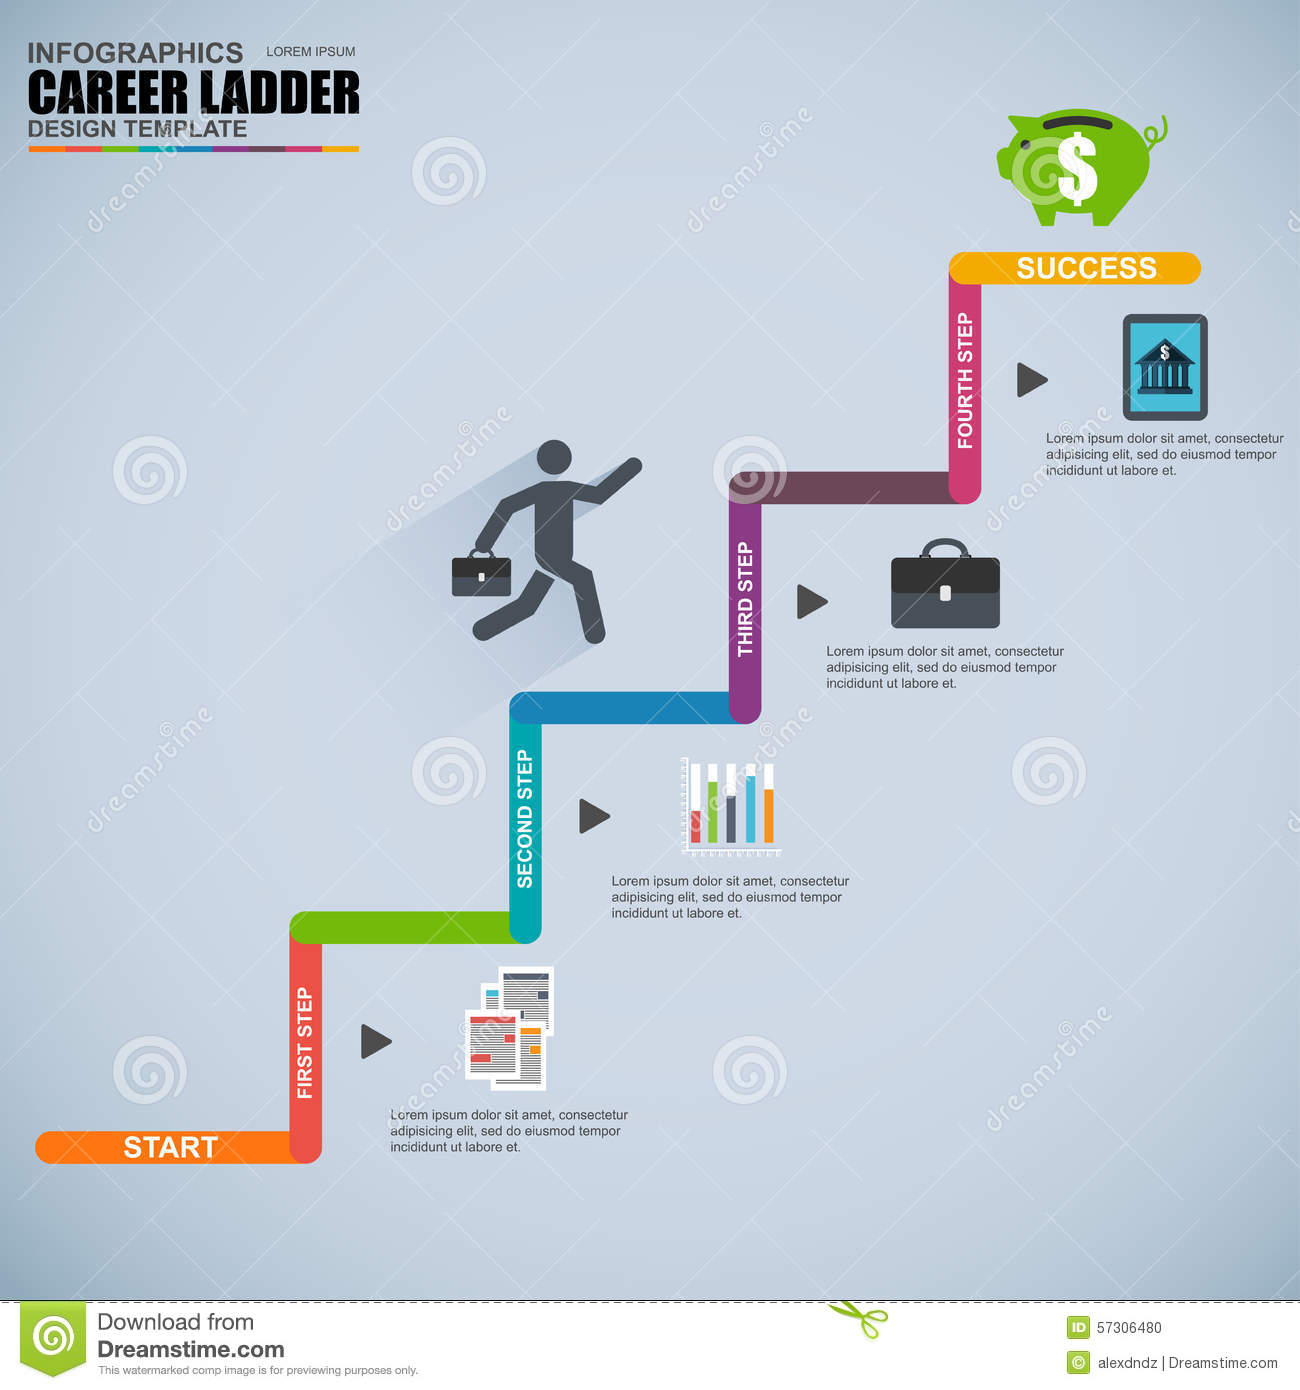 mind map mapping your career path iqmatrix com youtube